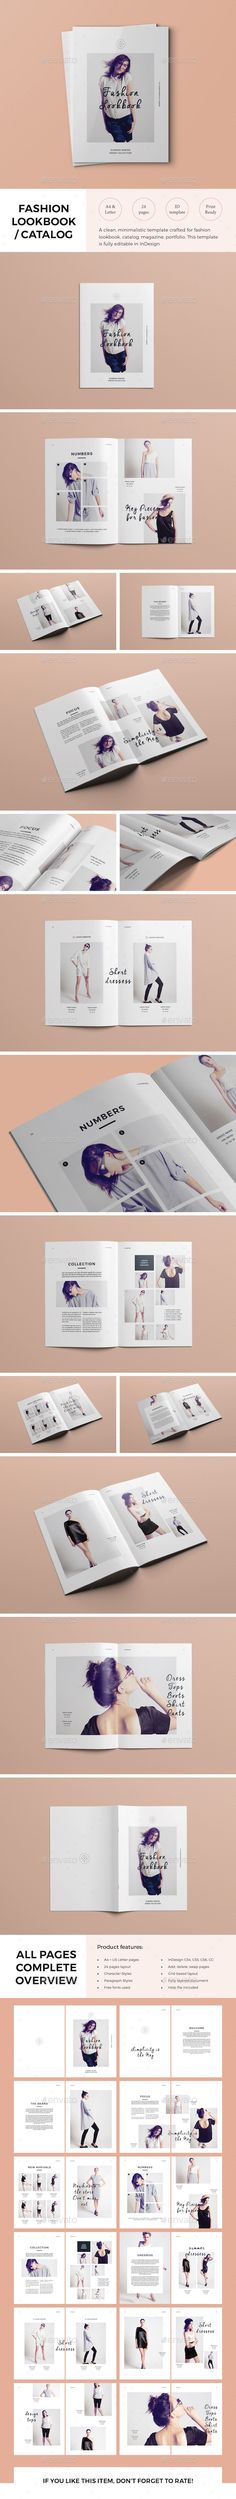 Fashion Lookbook / Catalog Template Template InDesign INDD #design Download: http://graphicriver.net/item/fashion-lookbook-catalog-template/14421576?ref=ksioks